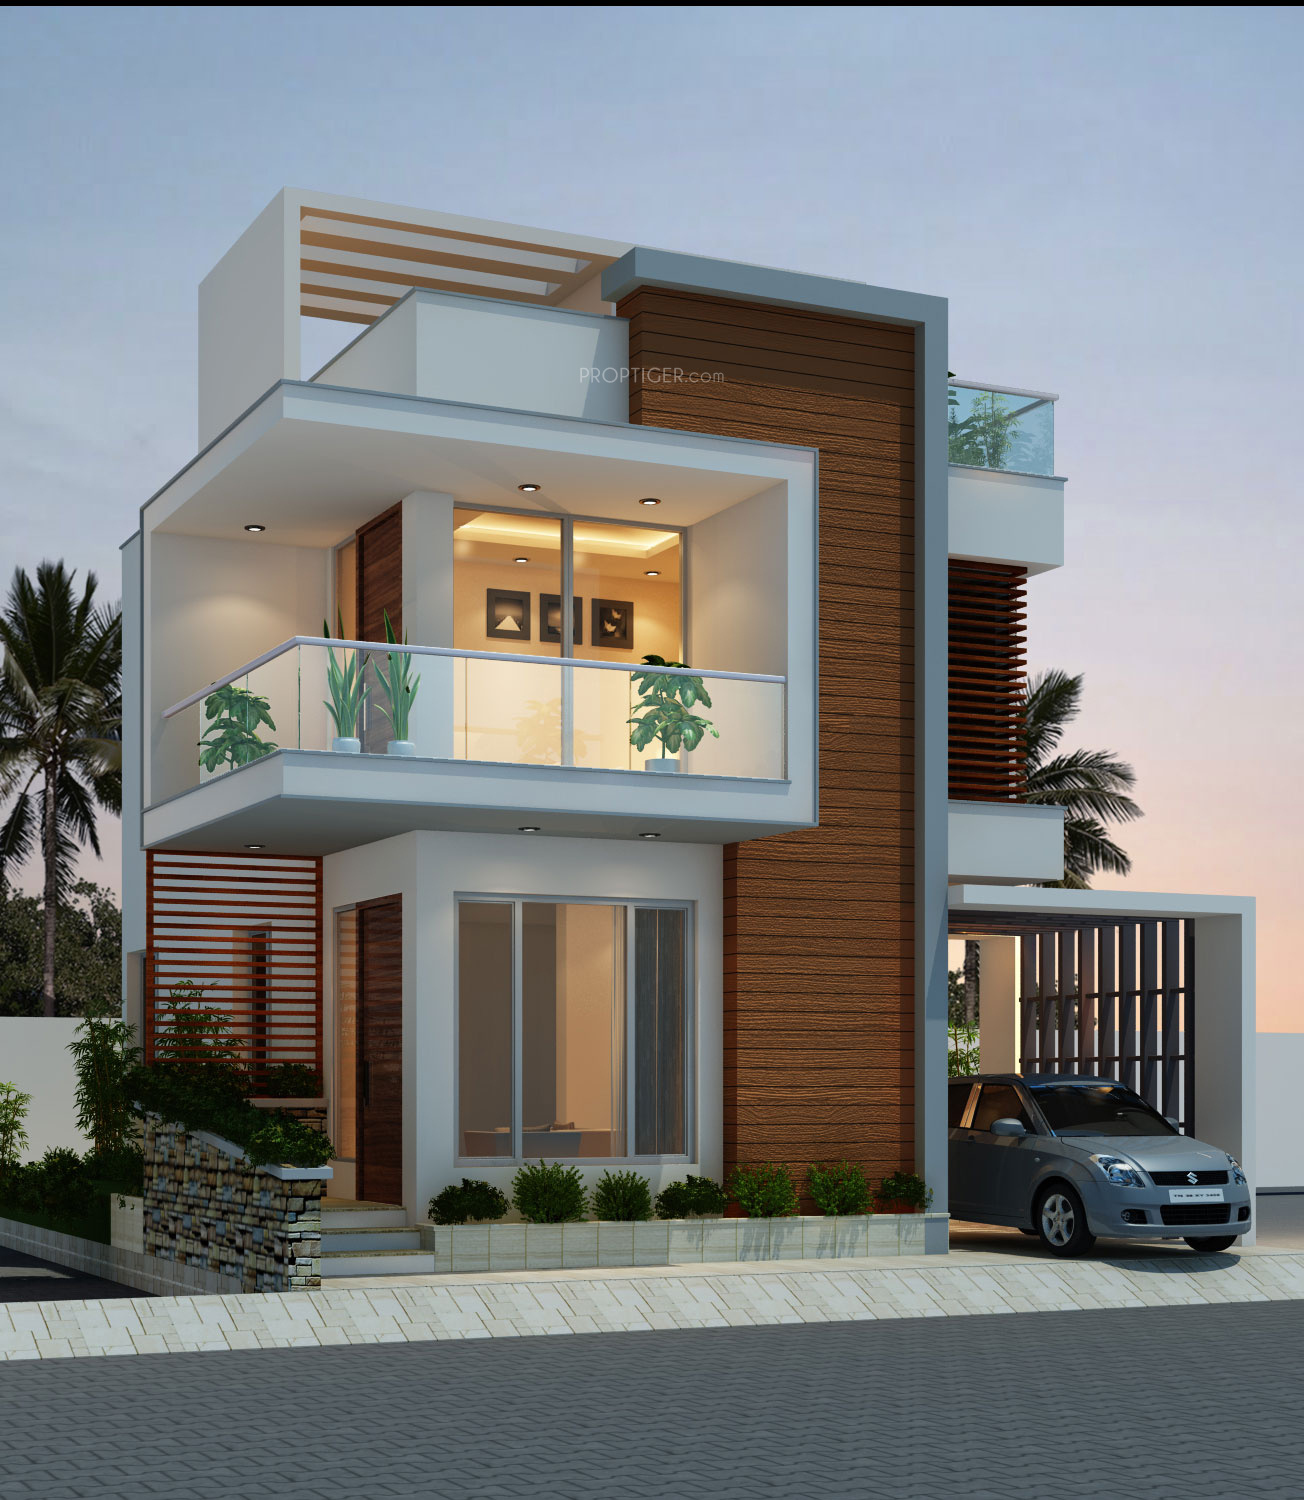 Headway fortune residency villa in perungalathur chennai for Small homes exterior design